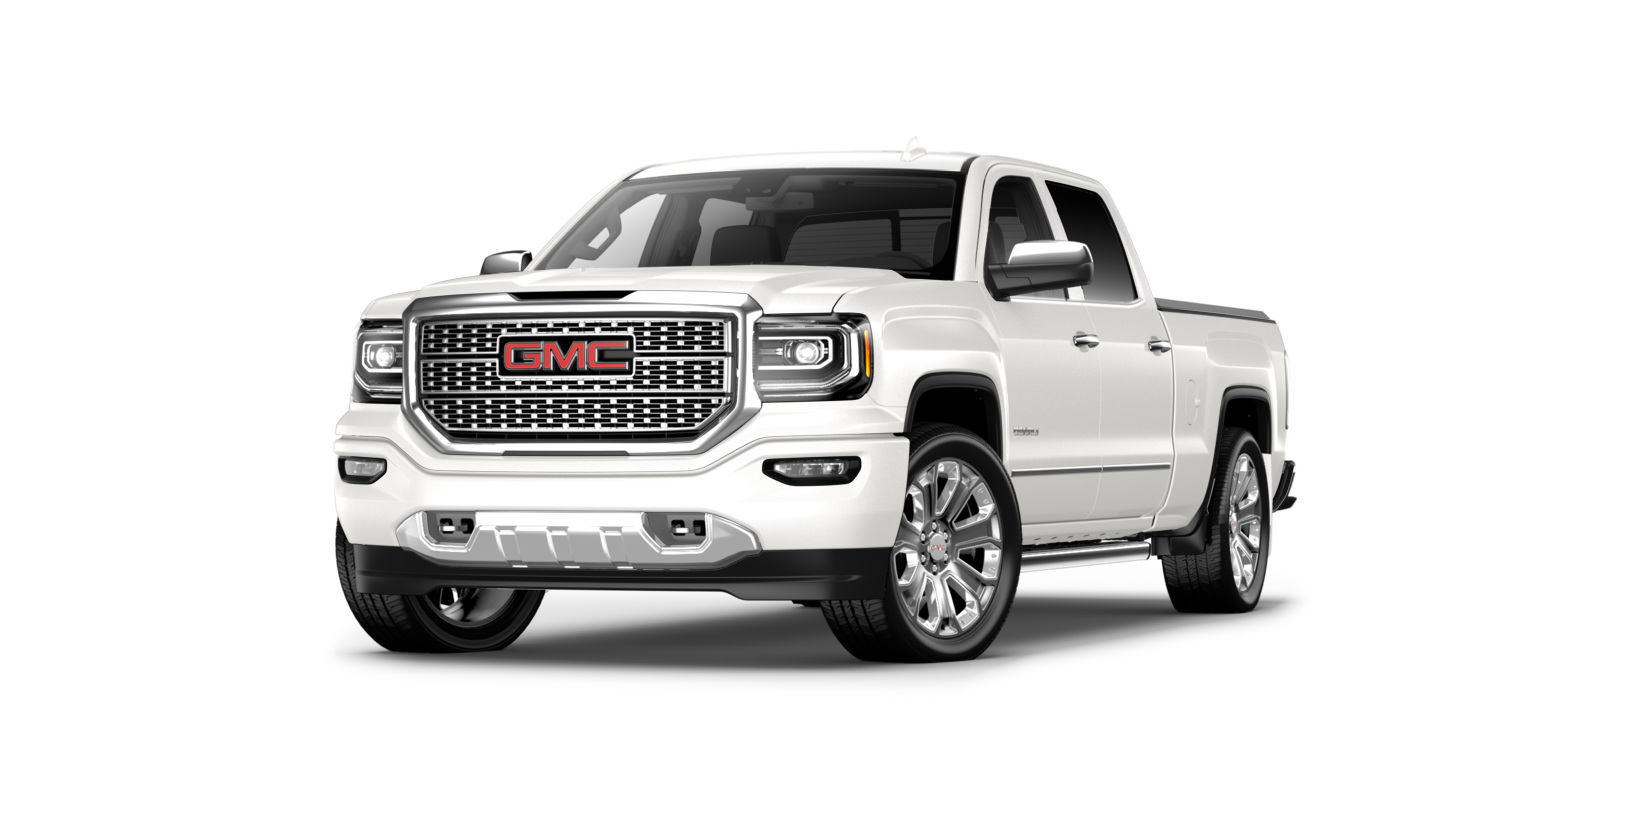 most expensive truck - sierra-1500-denali